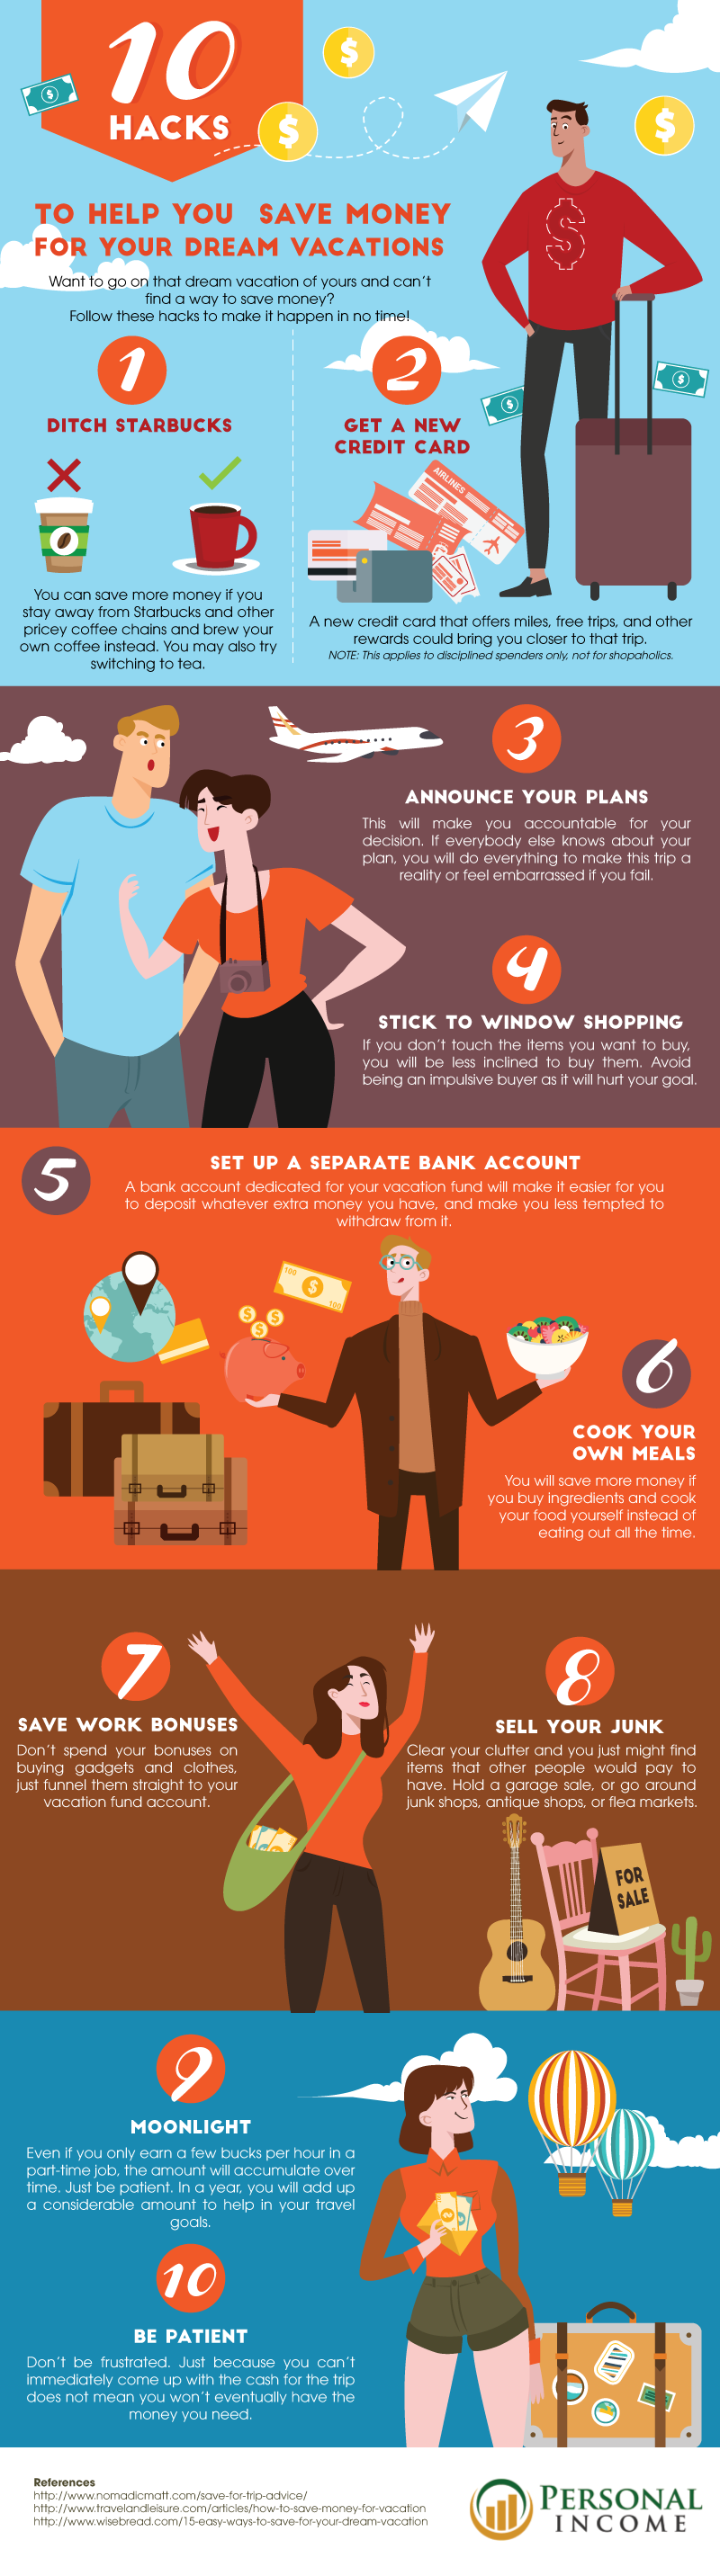 10 Hacks to Help You Save Money for Your Dream Vacations_AOT